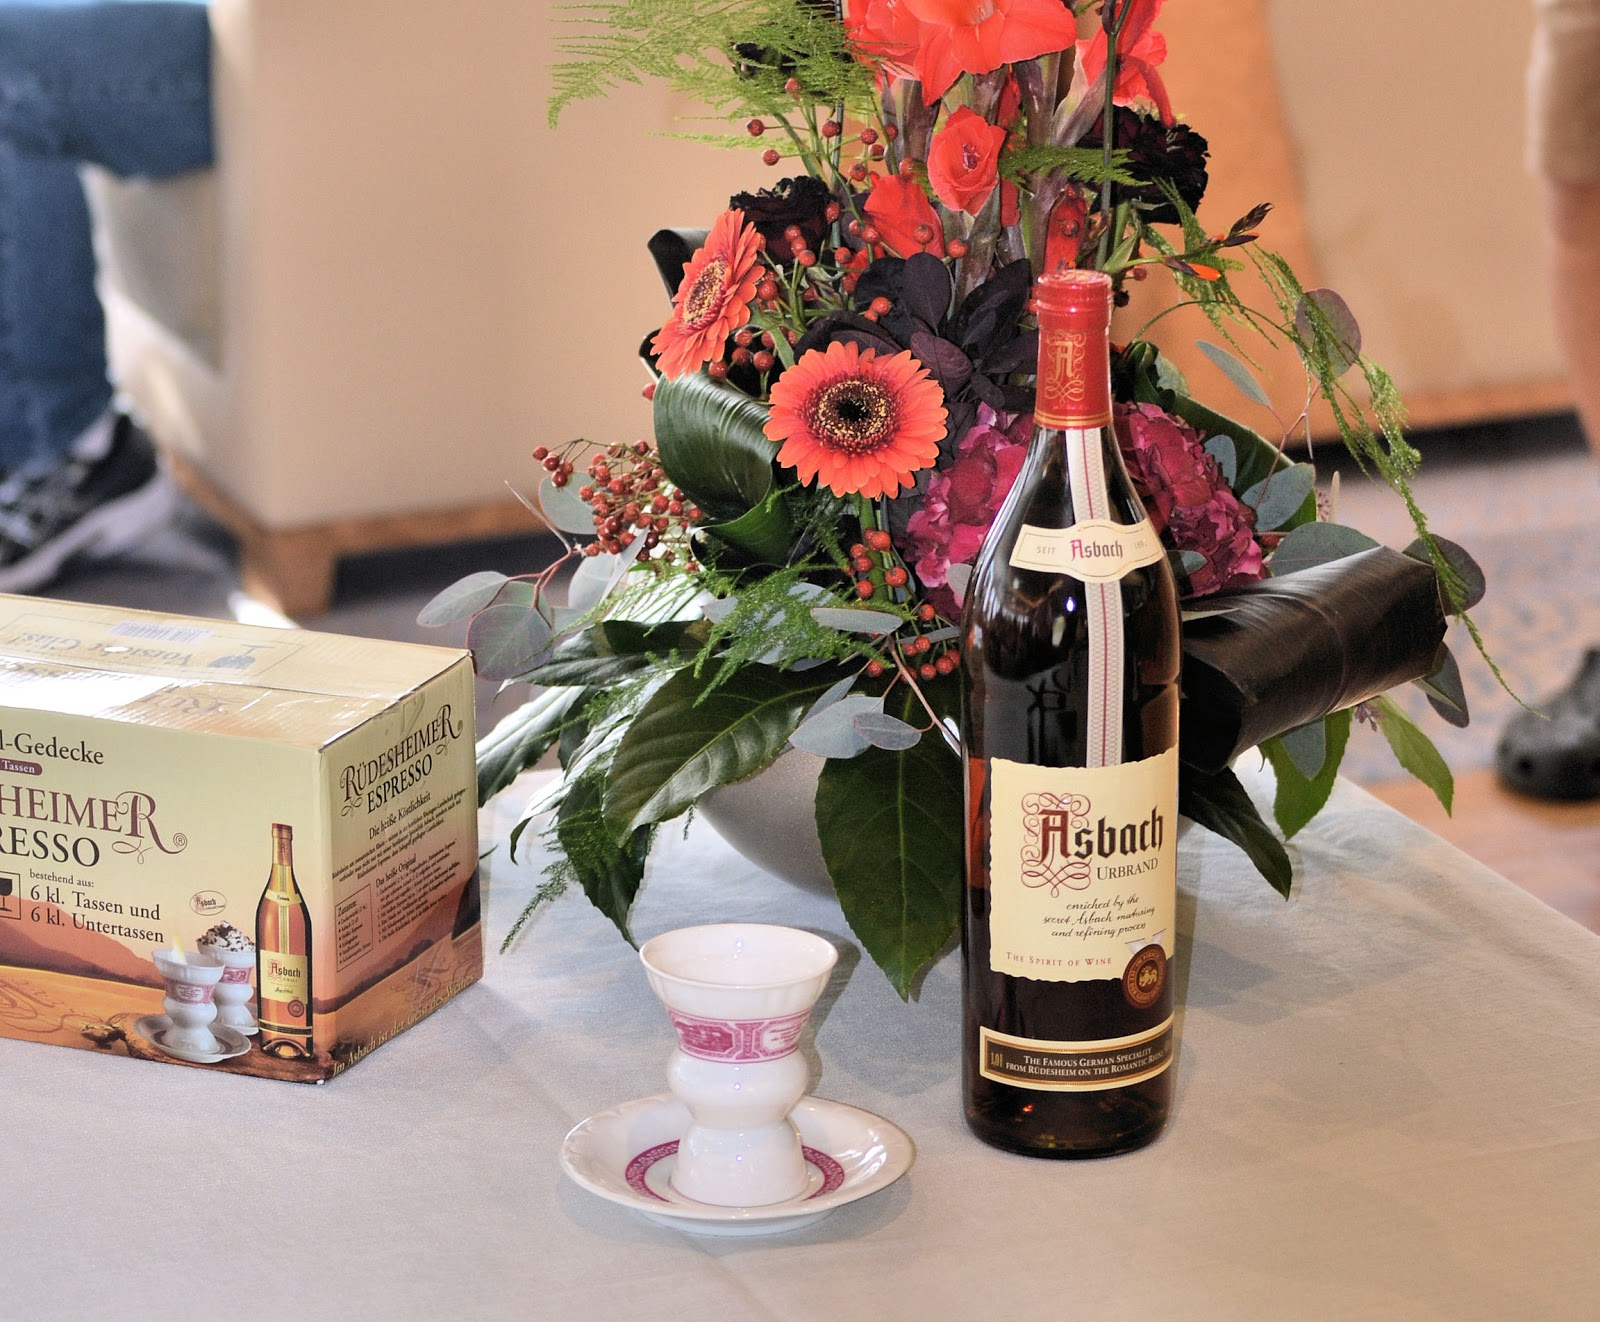 Asbach Uralt Winery tours are available but you must book in advance.